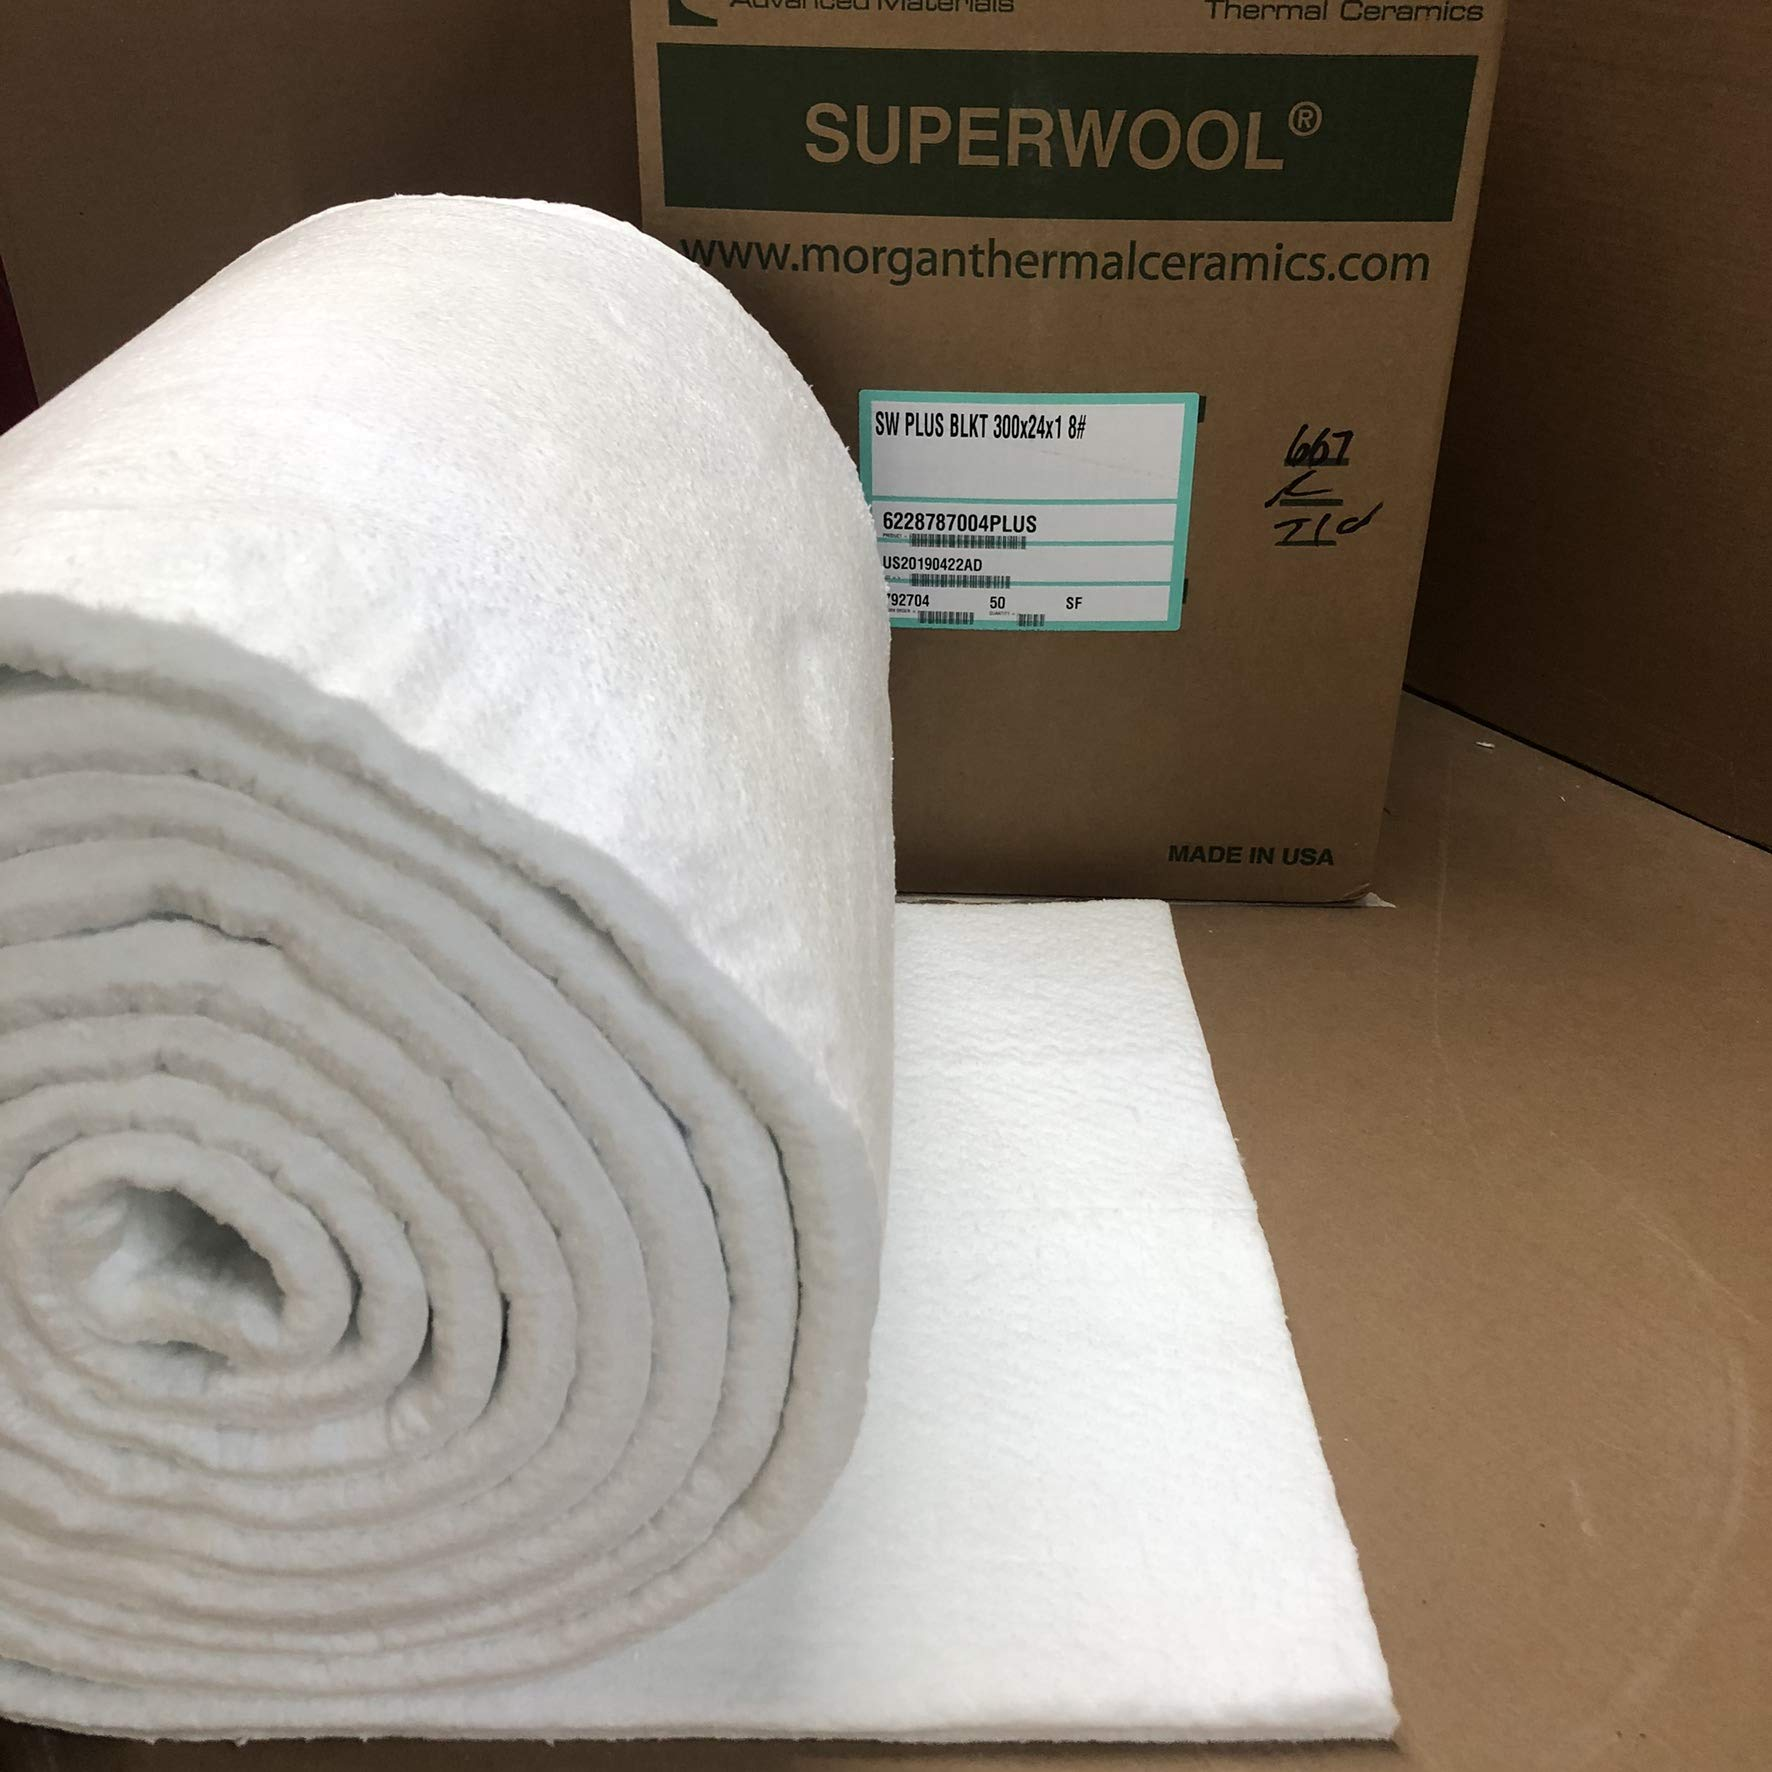 Lynn Manufacturing 1'' Thick, Superwool Plus Blanket, Morgan Thermal Ceramics, 2100F Rated, 8 Lb. Density, 24'' Wide, 25 Ft. Long by Lynn Manufacturing